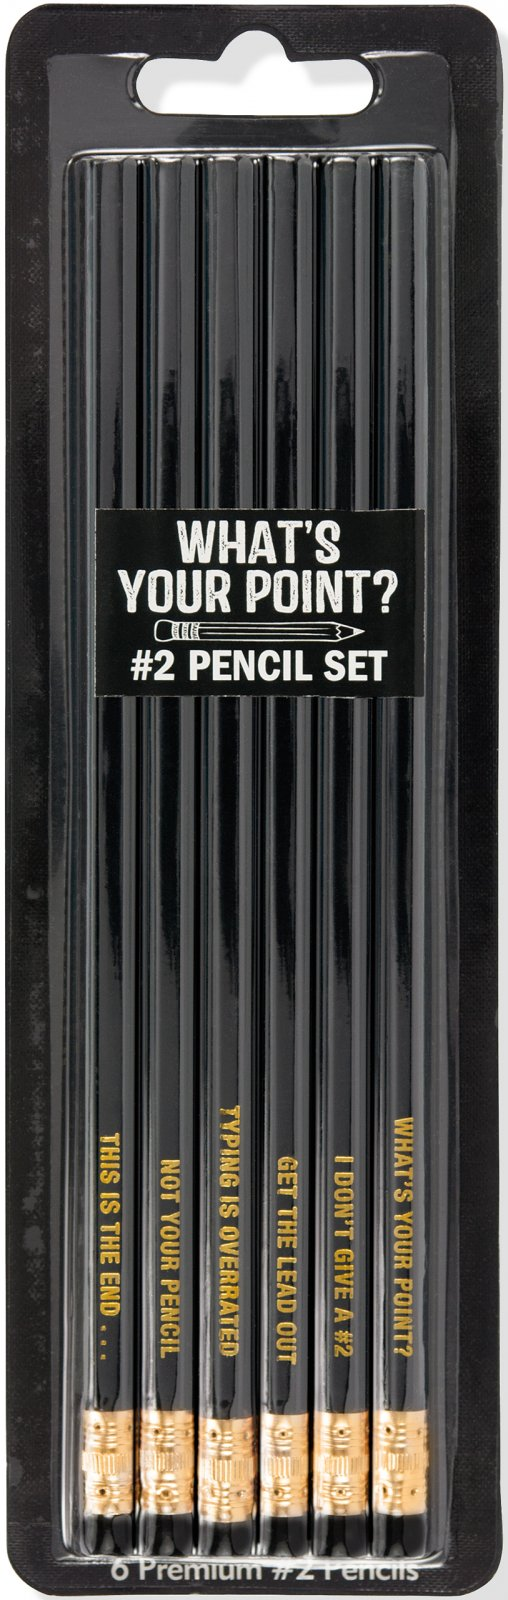 What's your point? #2 Pencil Set